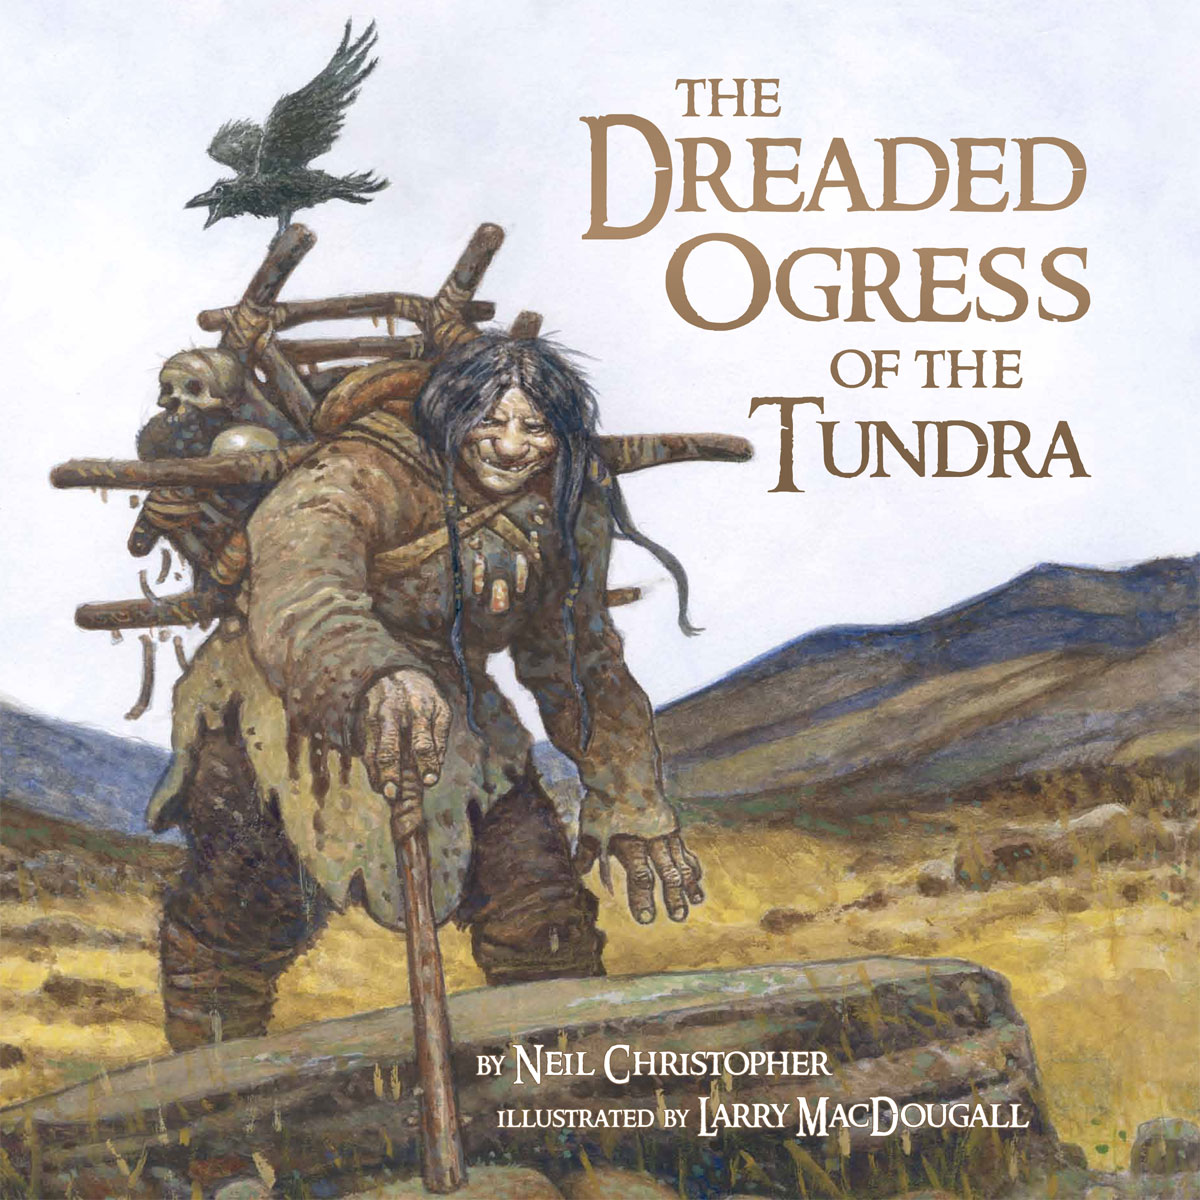 Dreaded Ogress of the Tundra